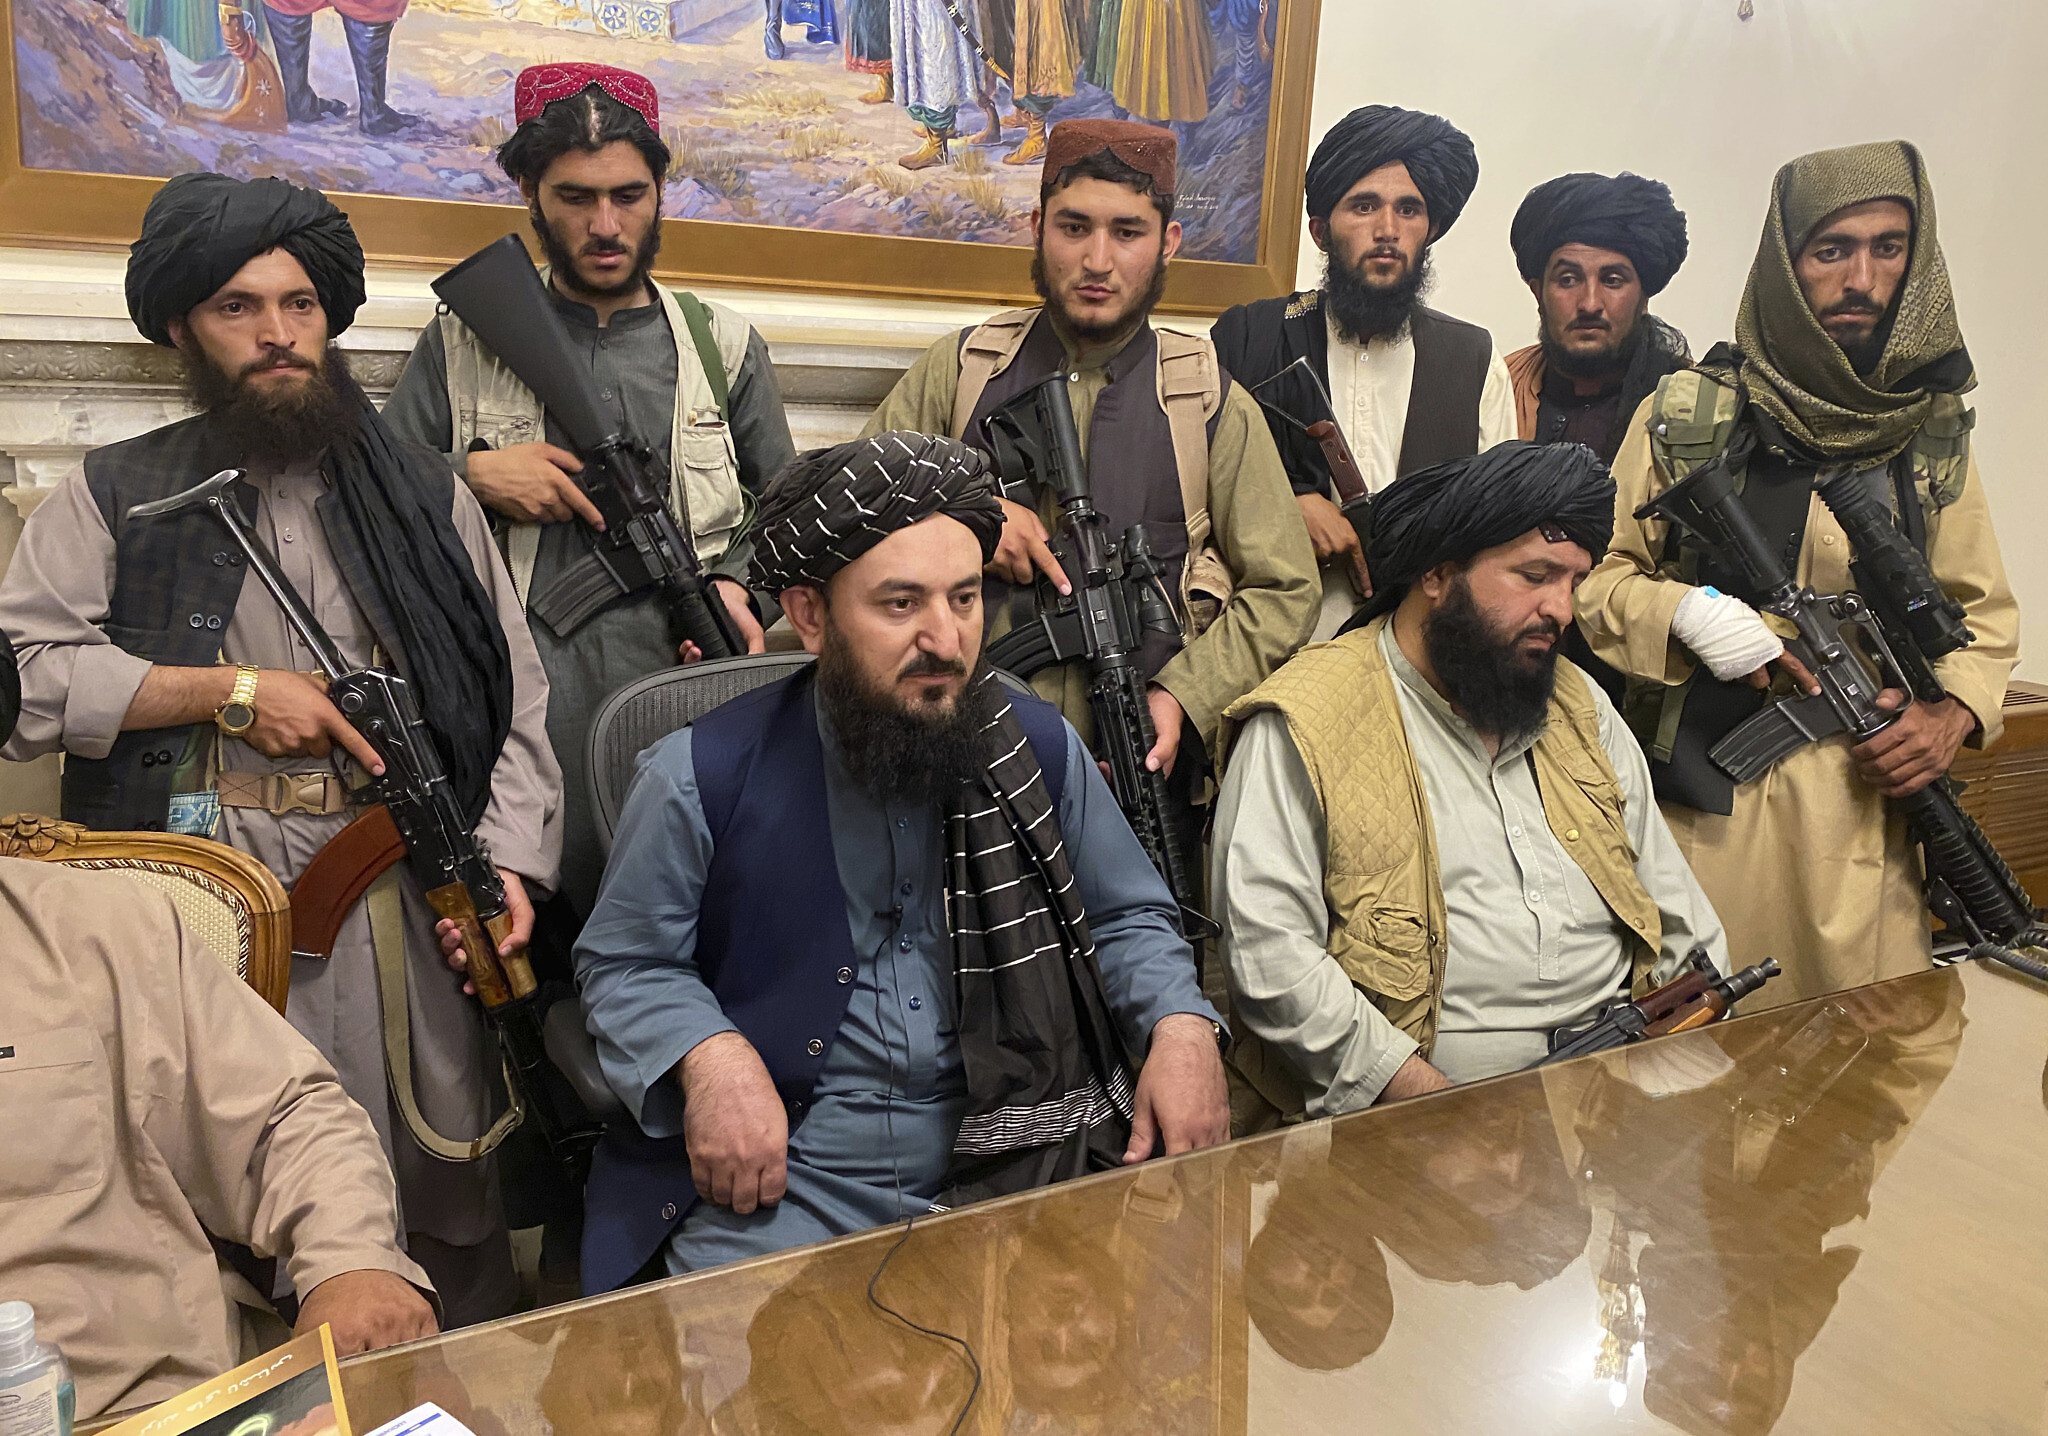 Taliban fighters take control of Afghan presidential palace after the Afghan President Ashraf Ghani fled the country, in Kabul, Afghanistan.